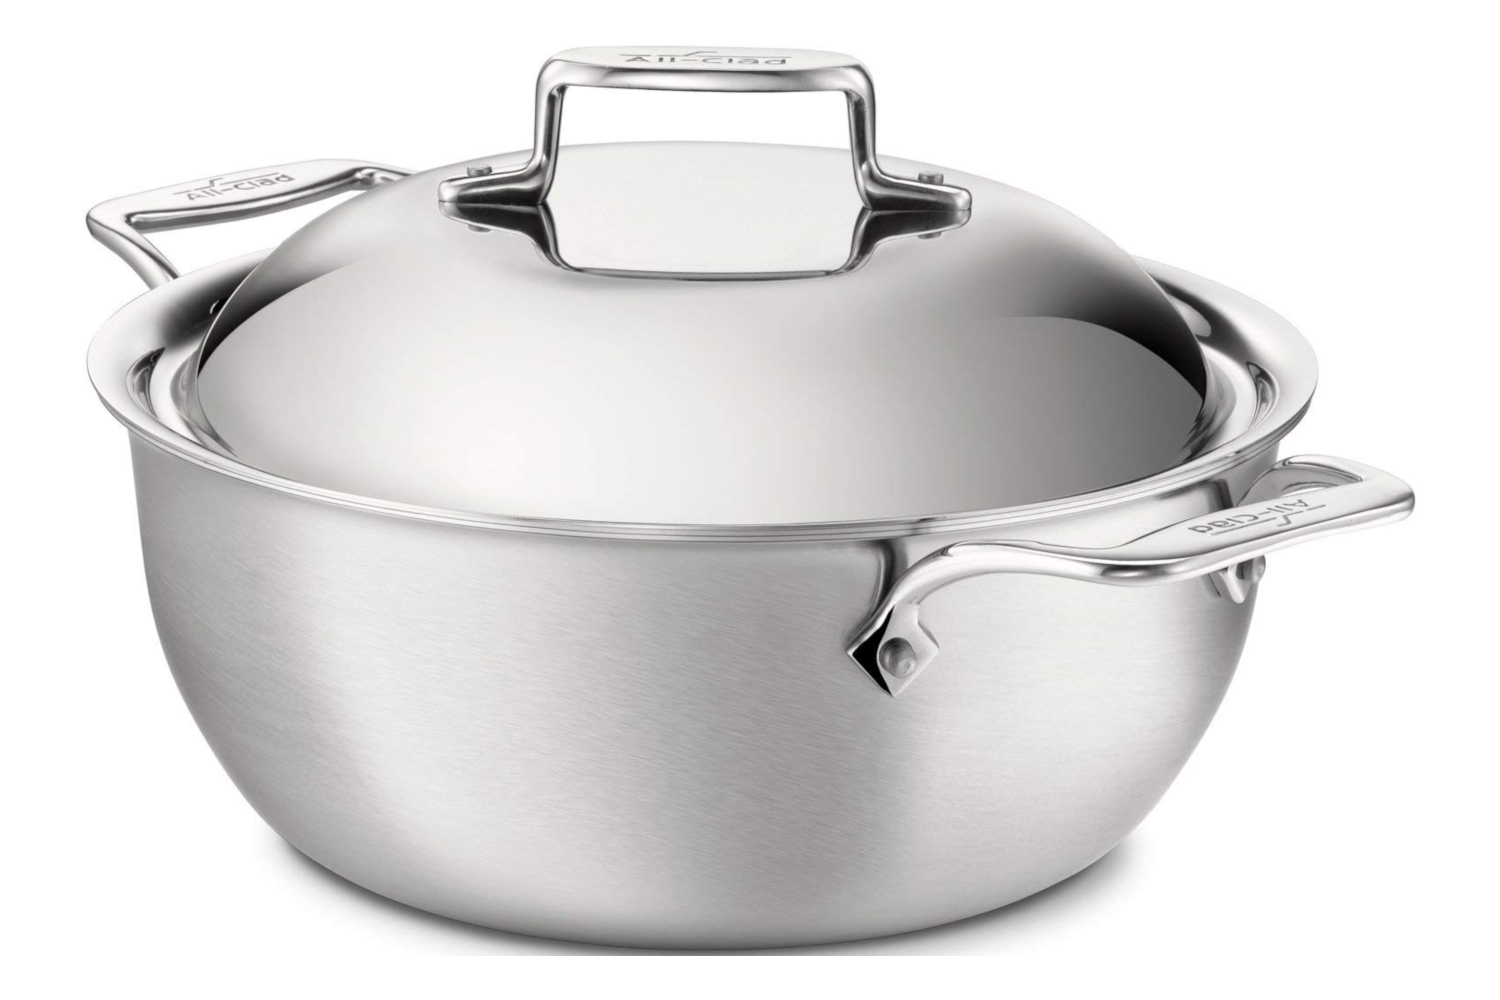 All-Clad d5 Brushed Stainless 5 1/2 qt. Dutch Oven